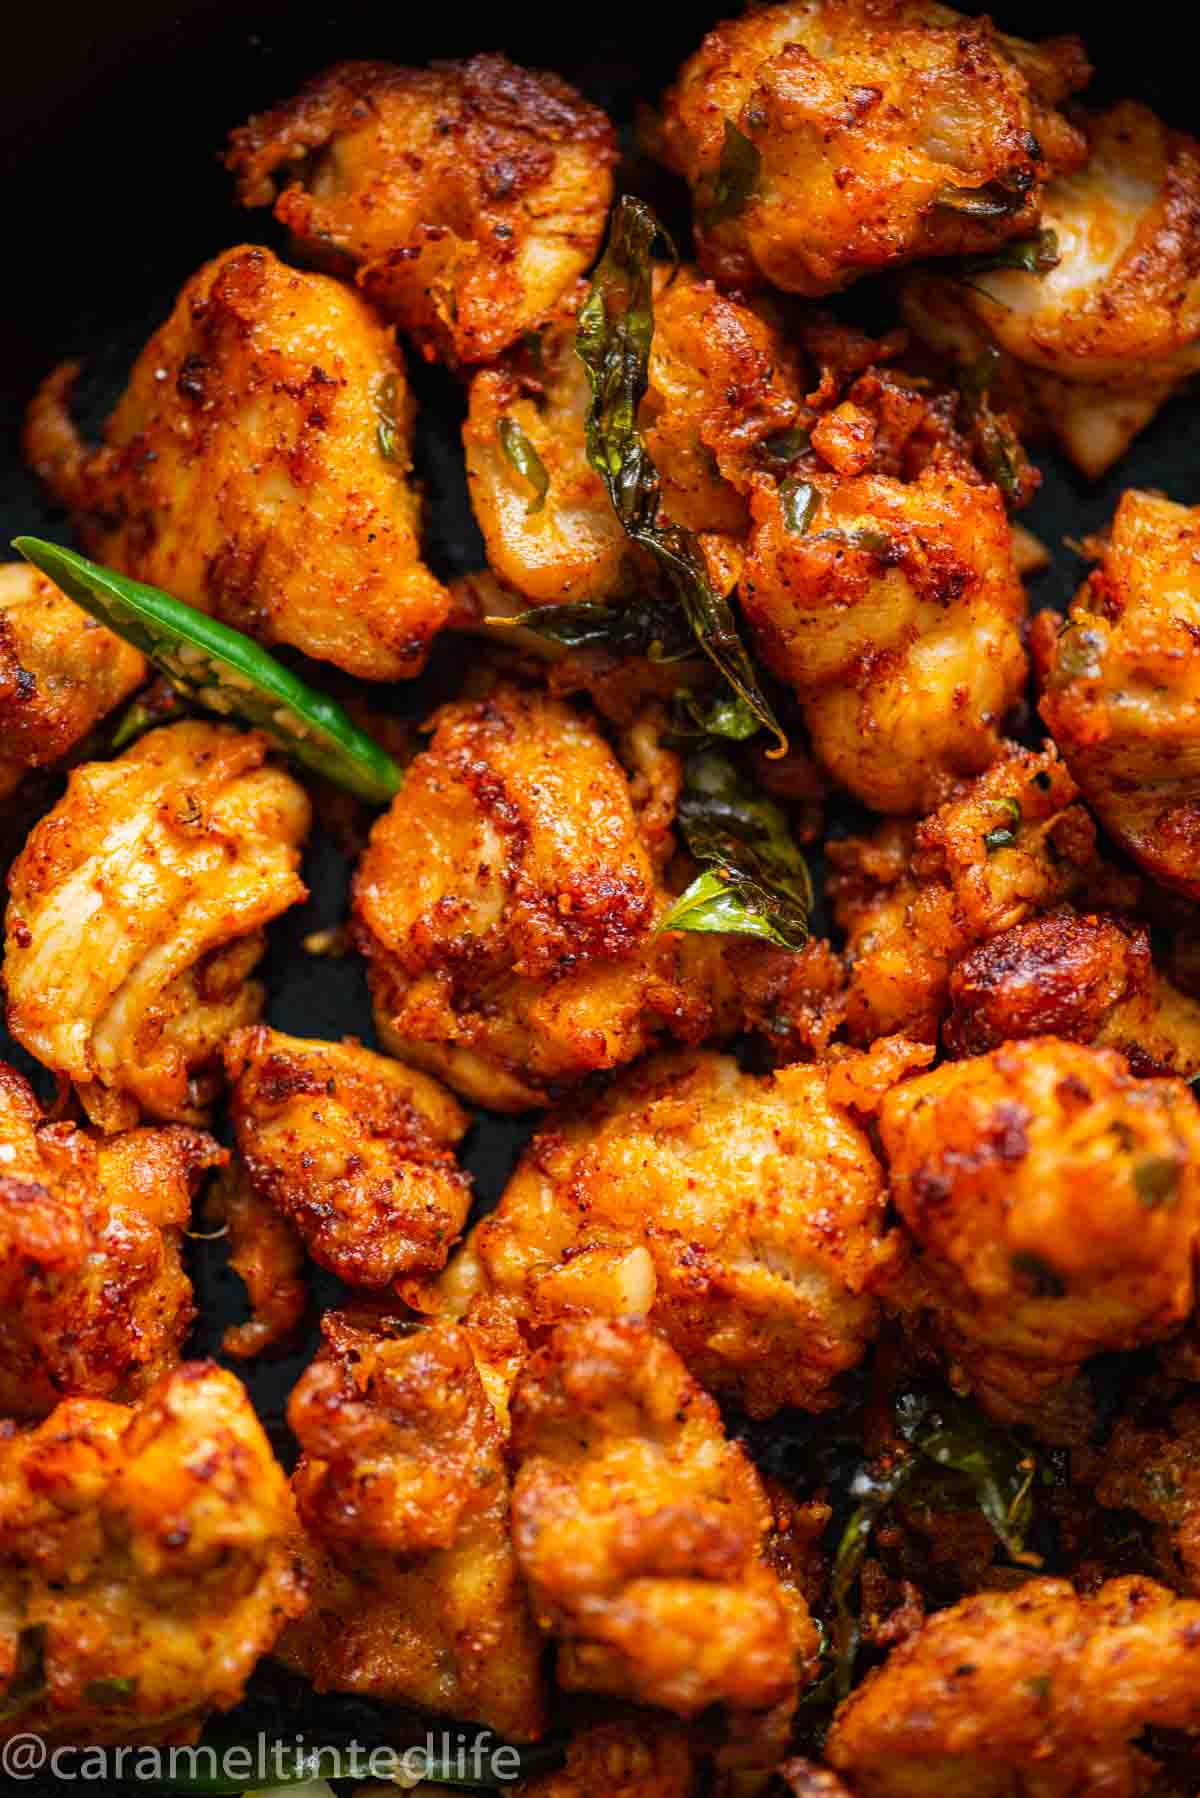 Close-up of chicken coated in spices